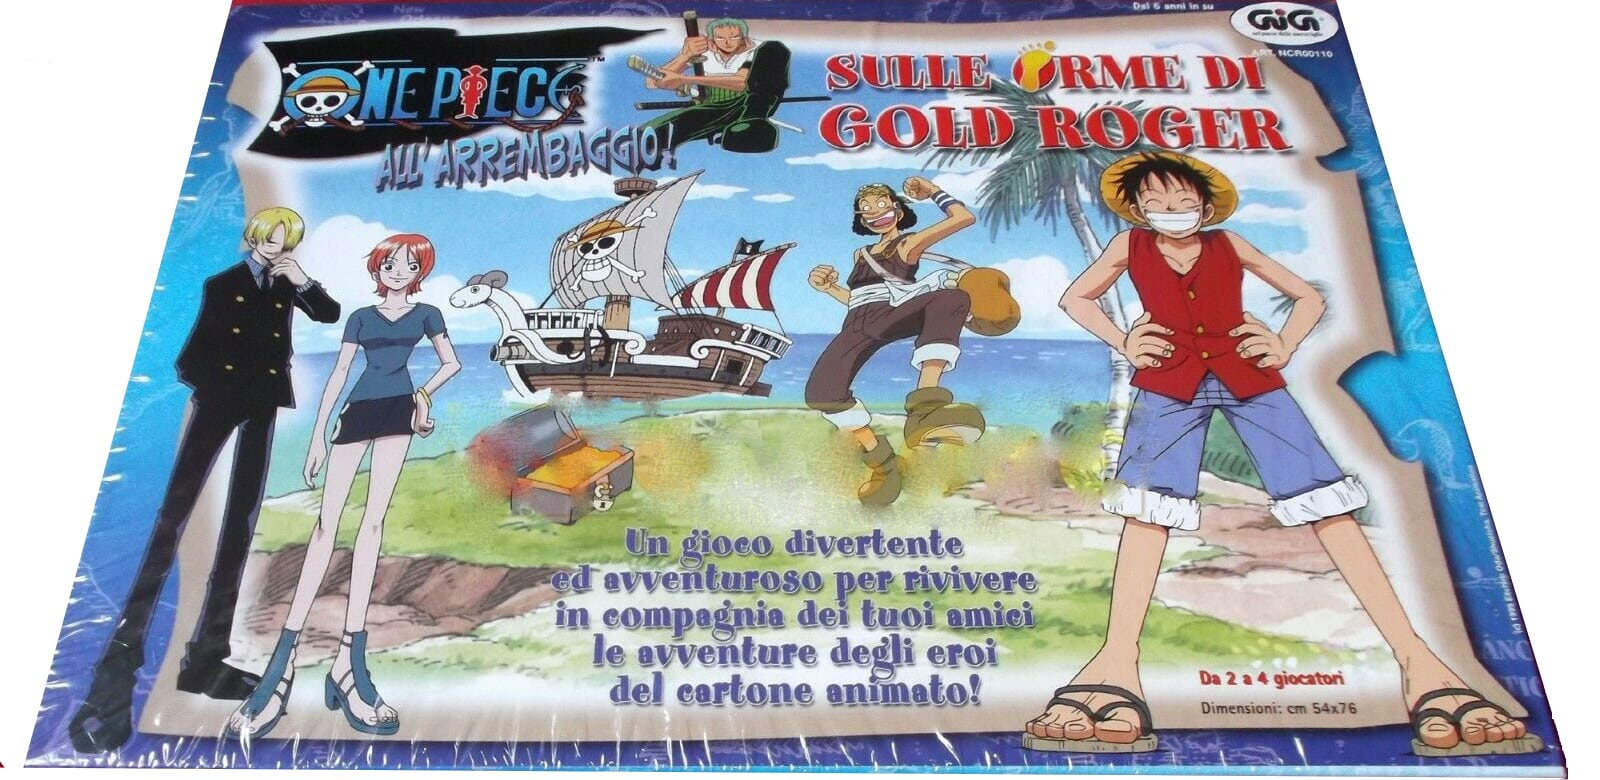 One piece sulle orme di Gold Roger